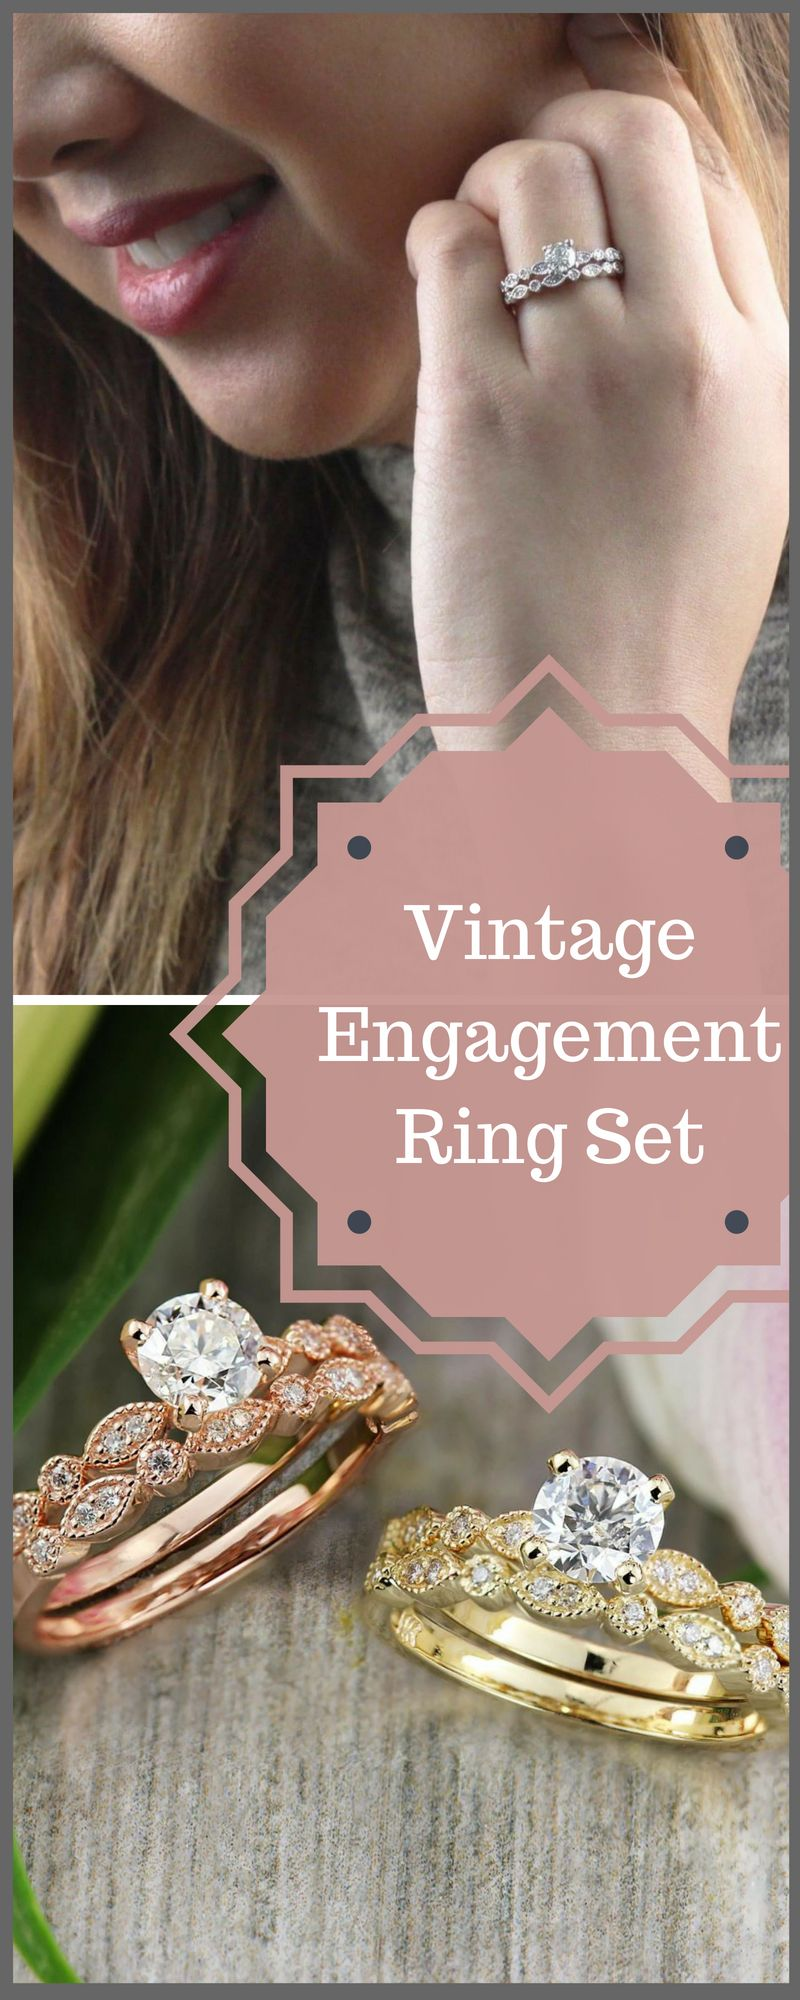 This vintage engagement ring comes in gold, yellow gold, and silver ...